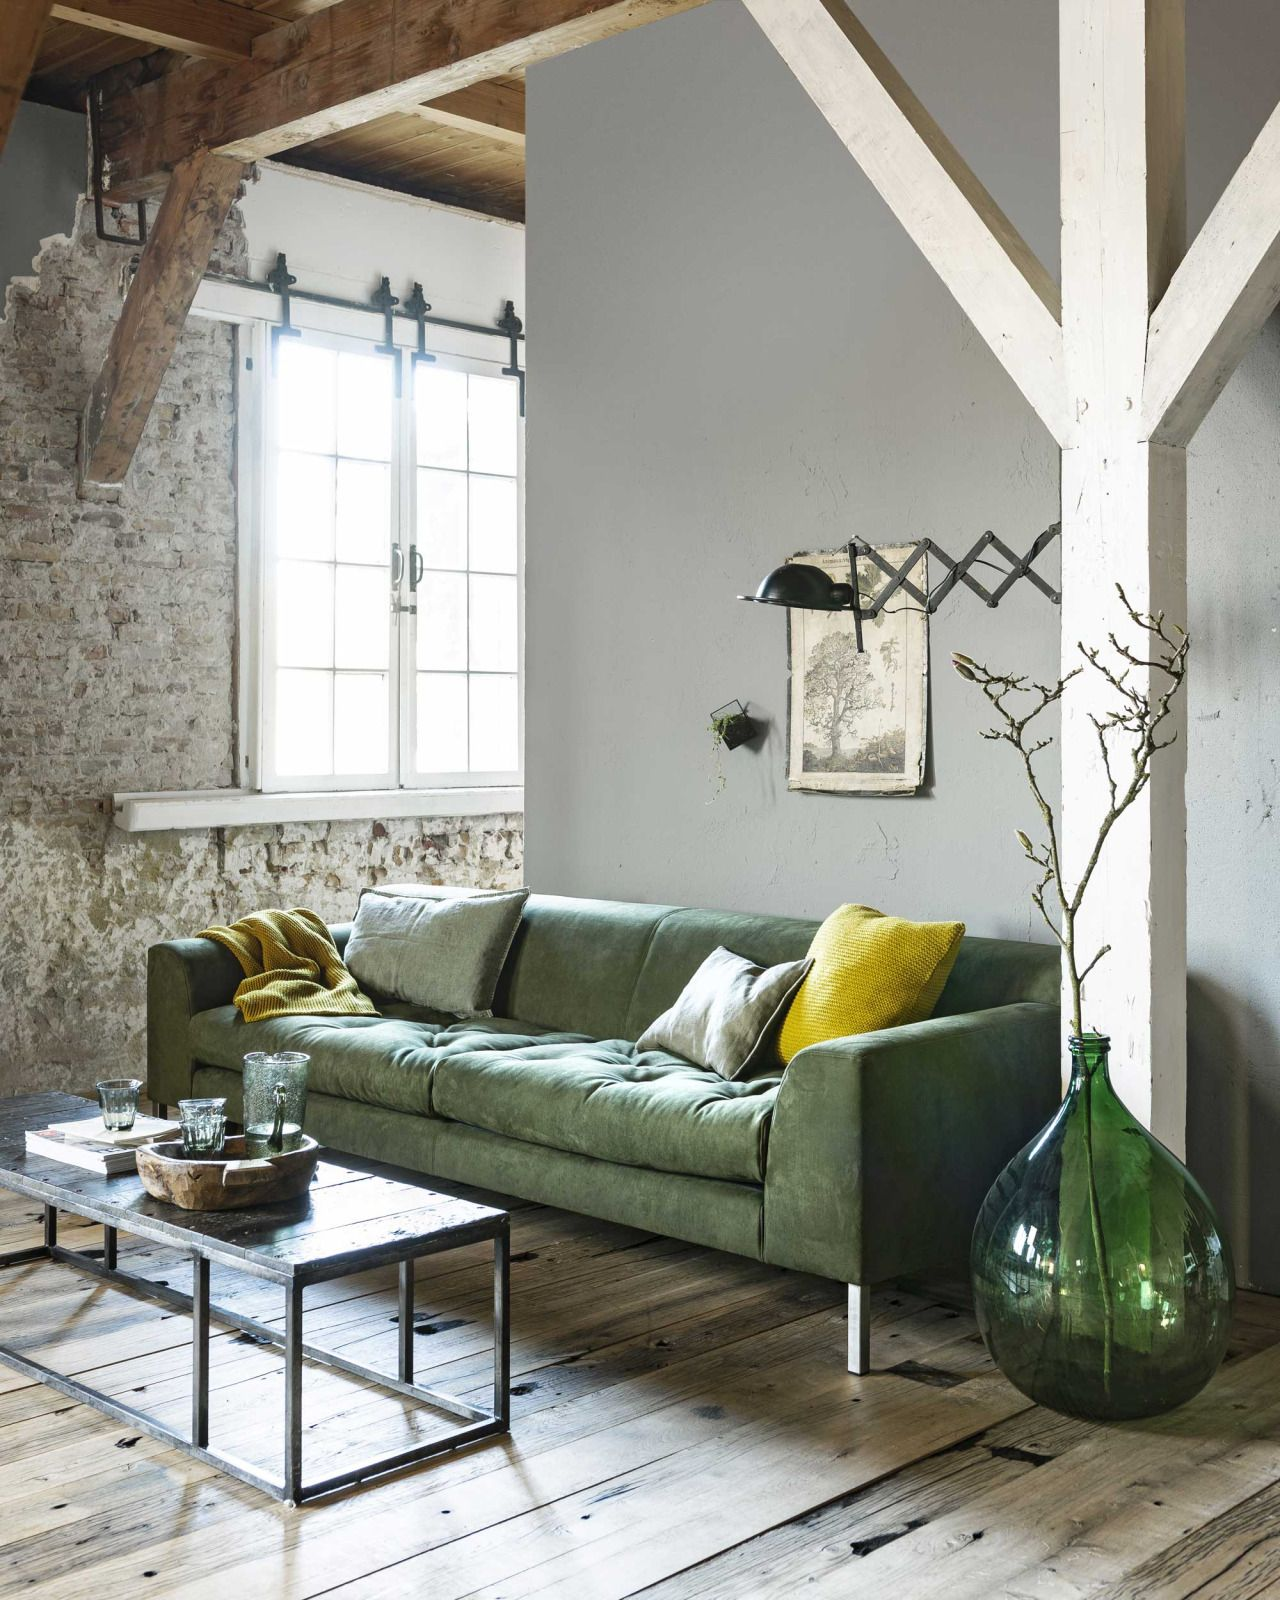 Rustic Living Room With Exposed Beams Brick And A Green Sofa